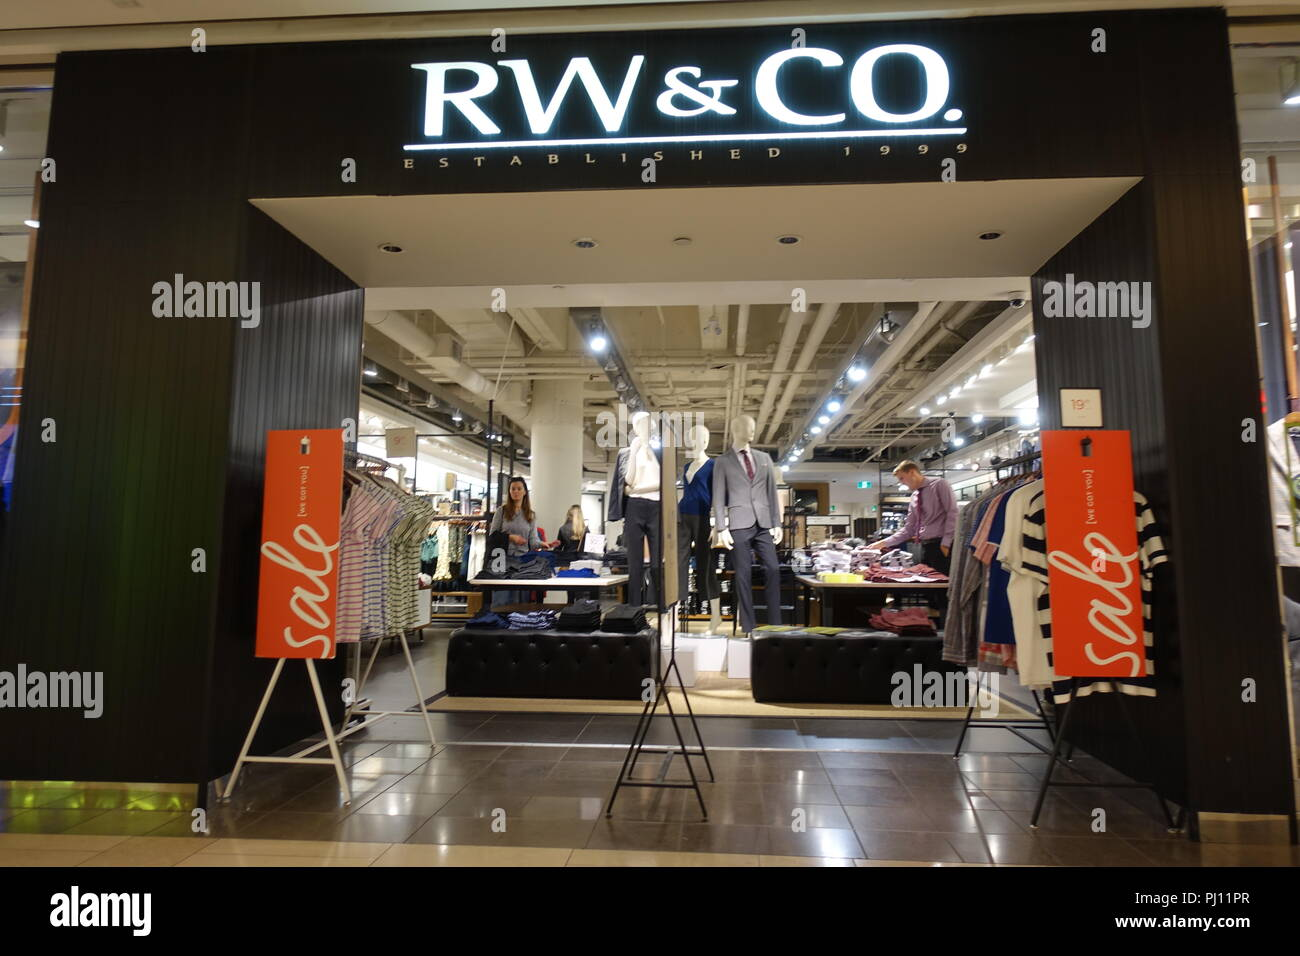 August 31 2018- RW & CO. Established 1999 Store inside Metrotown Burnaby, BC Canada - Stock Image